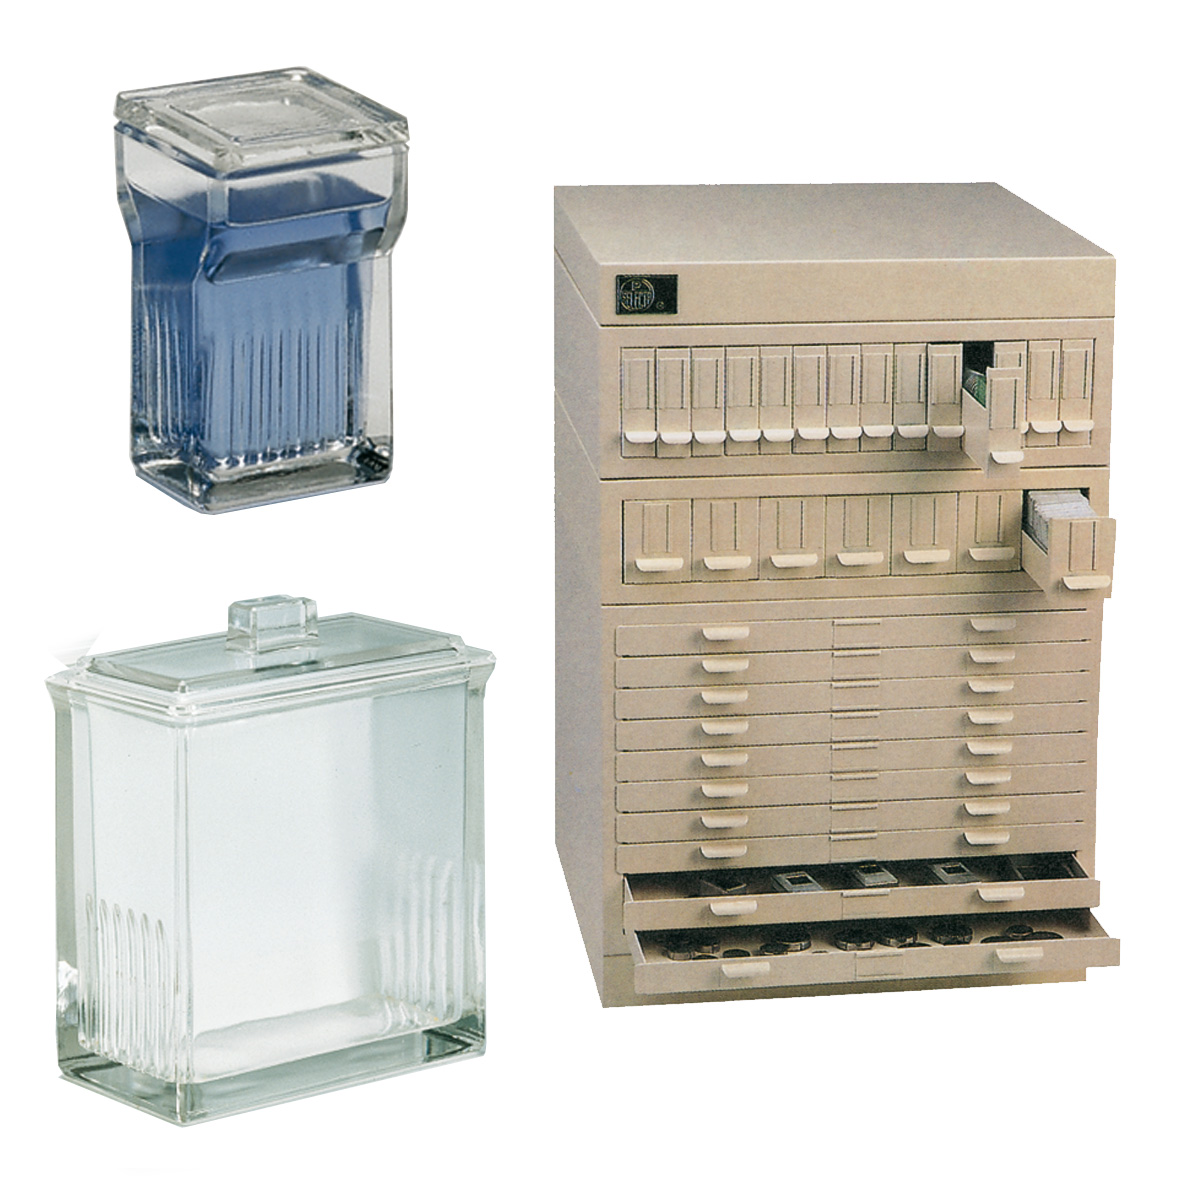 Staining and cromatography tanks, storage chest